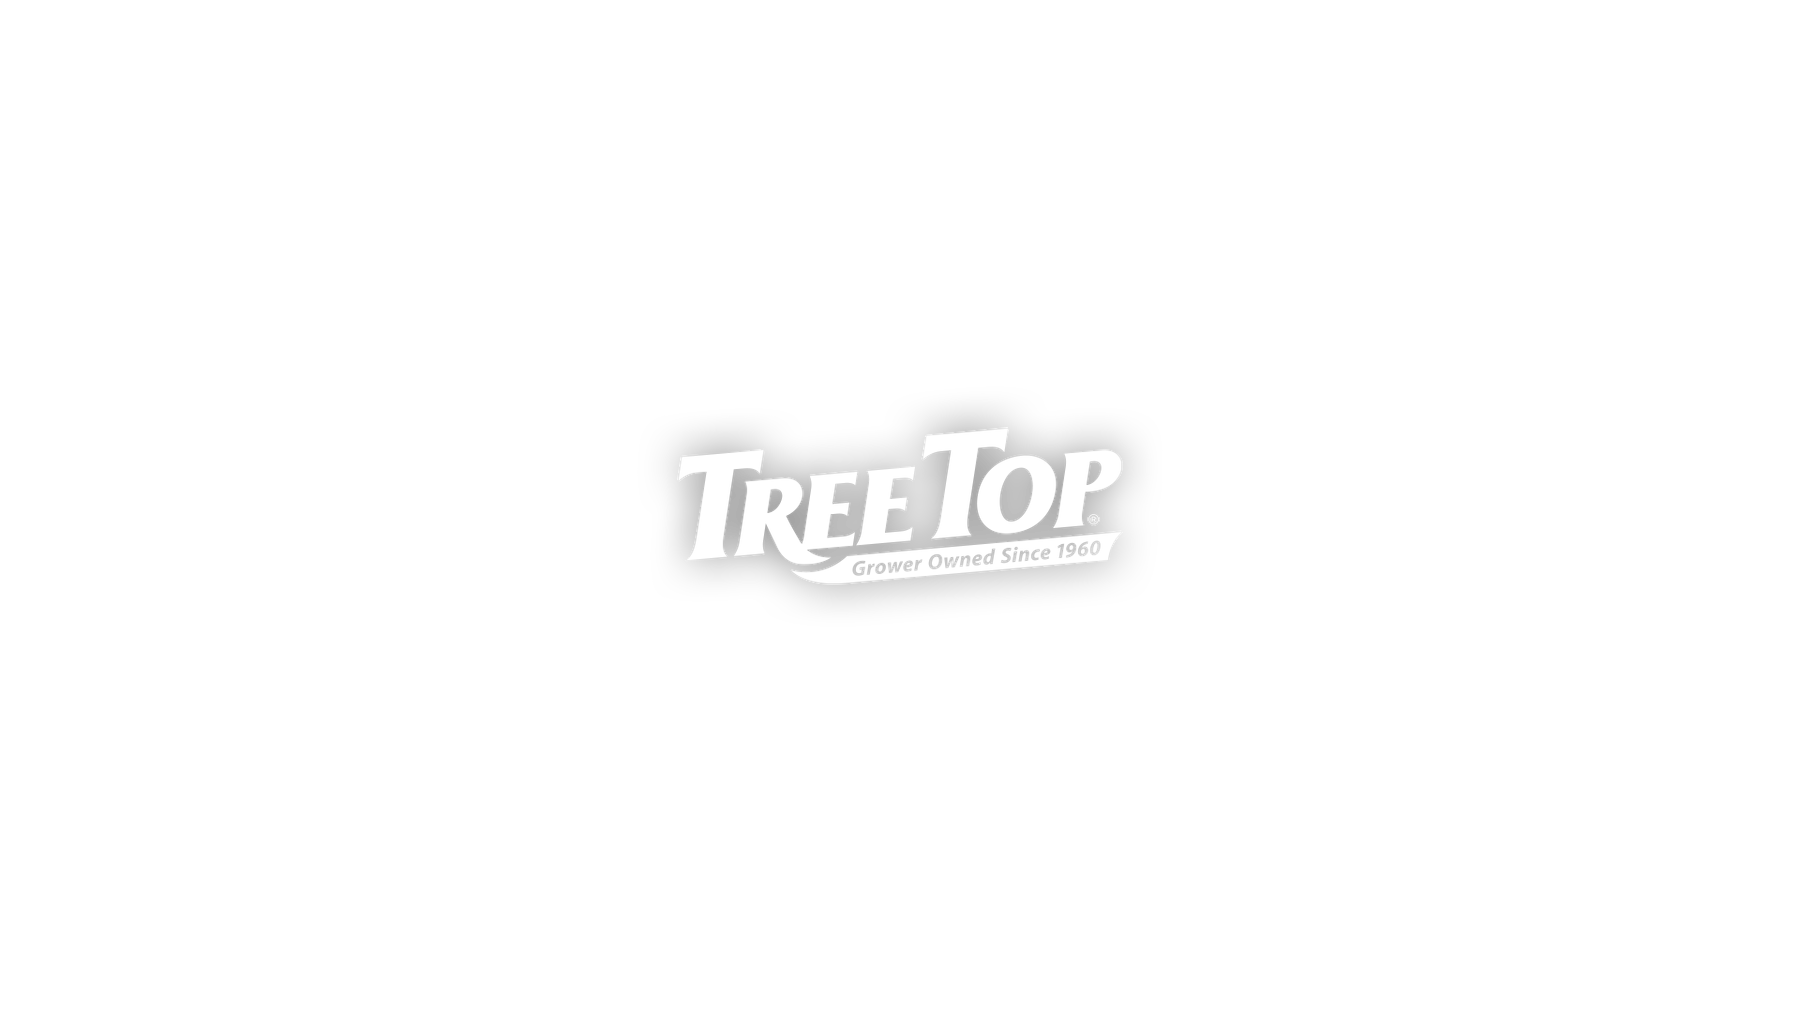 Tree top center